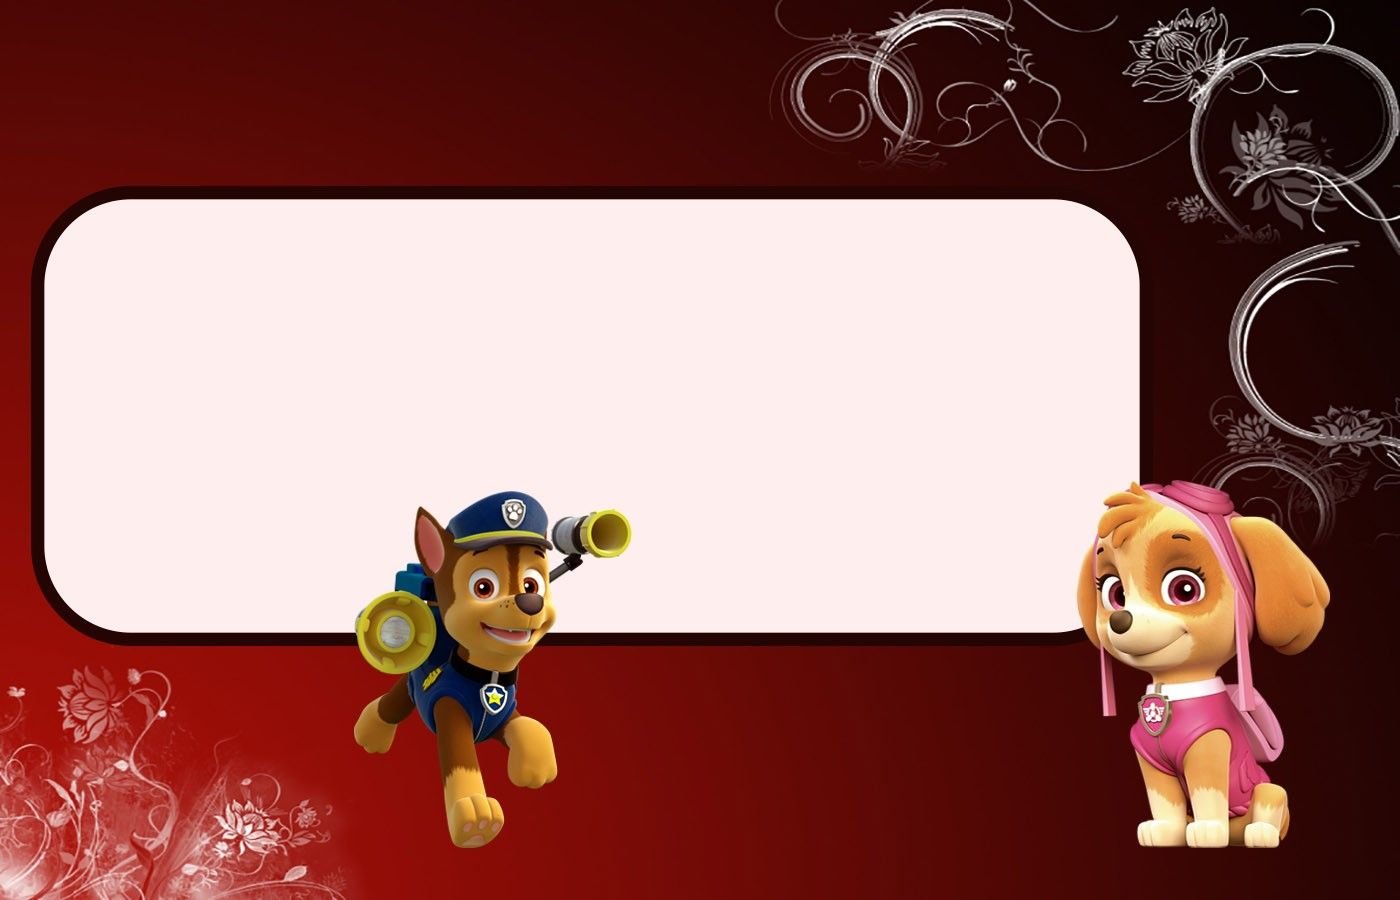 Free Printable Paw Patrol Invitation Template Chase And Skye Invitations Online Paw Patrol Invitations Birthday Invitations Diy Online Invitations